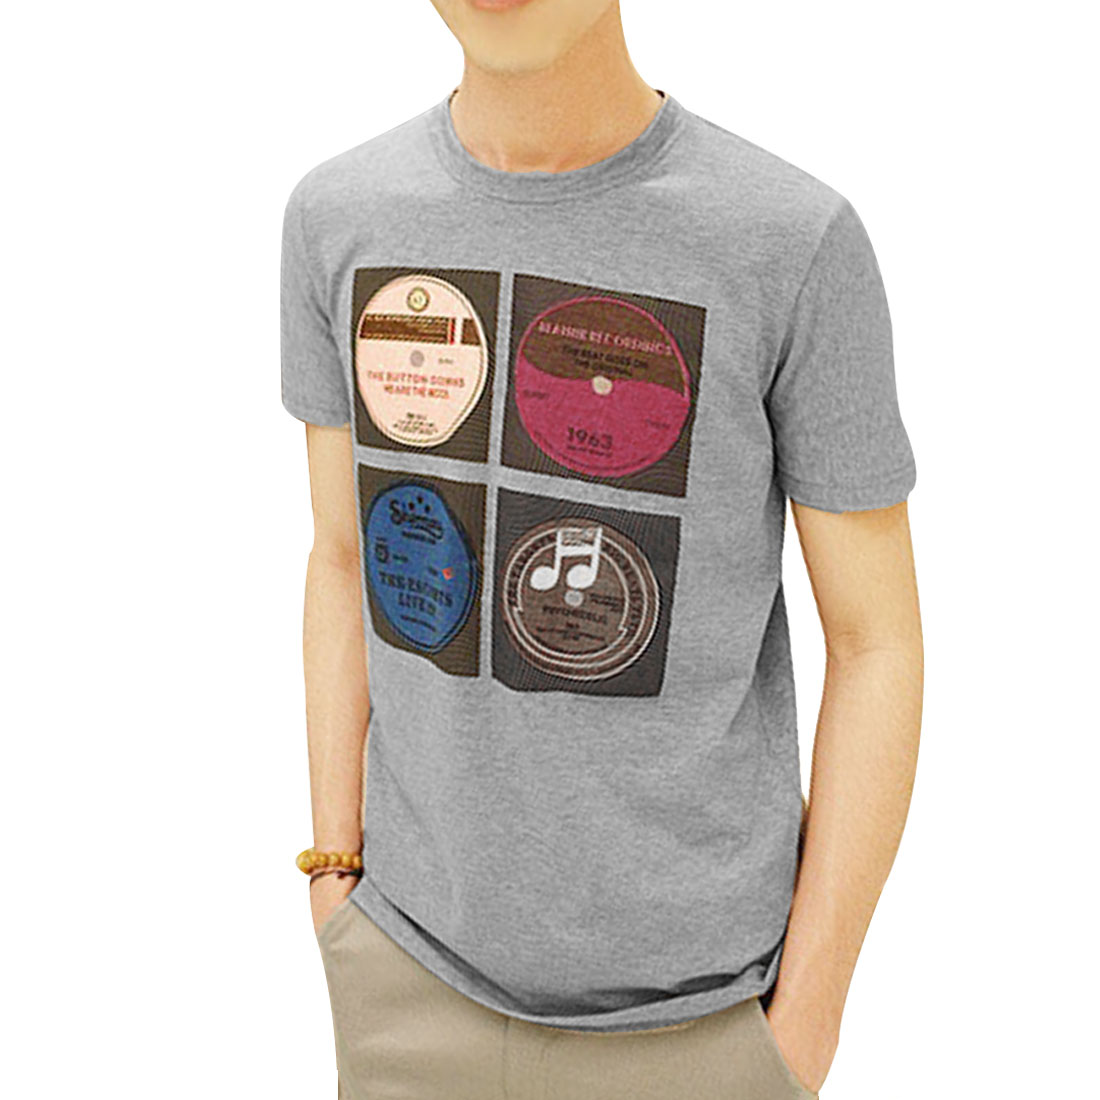 Pullover Summer Casual Stylish T-Shirt for Handsome Men Gray M